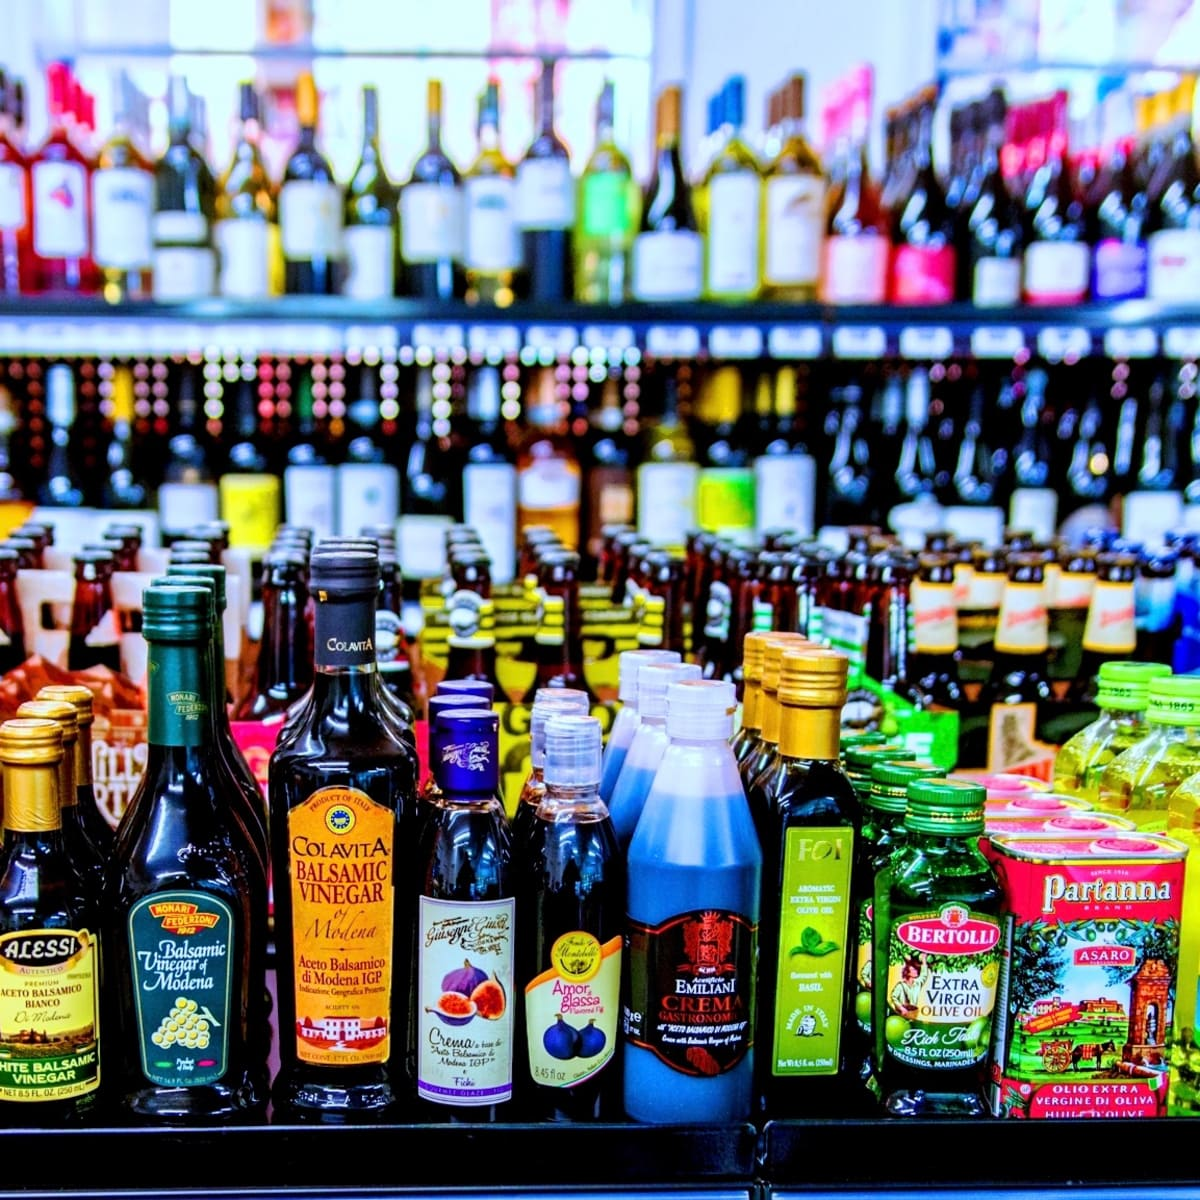 Italian American Grocery Heights vinegars and olive oil